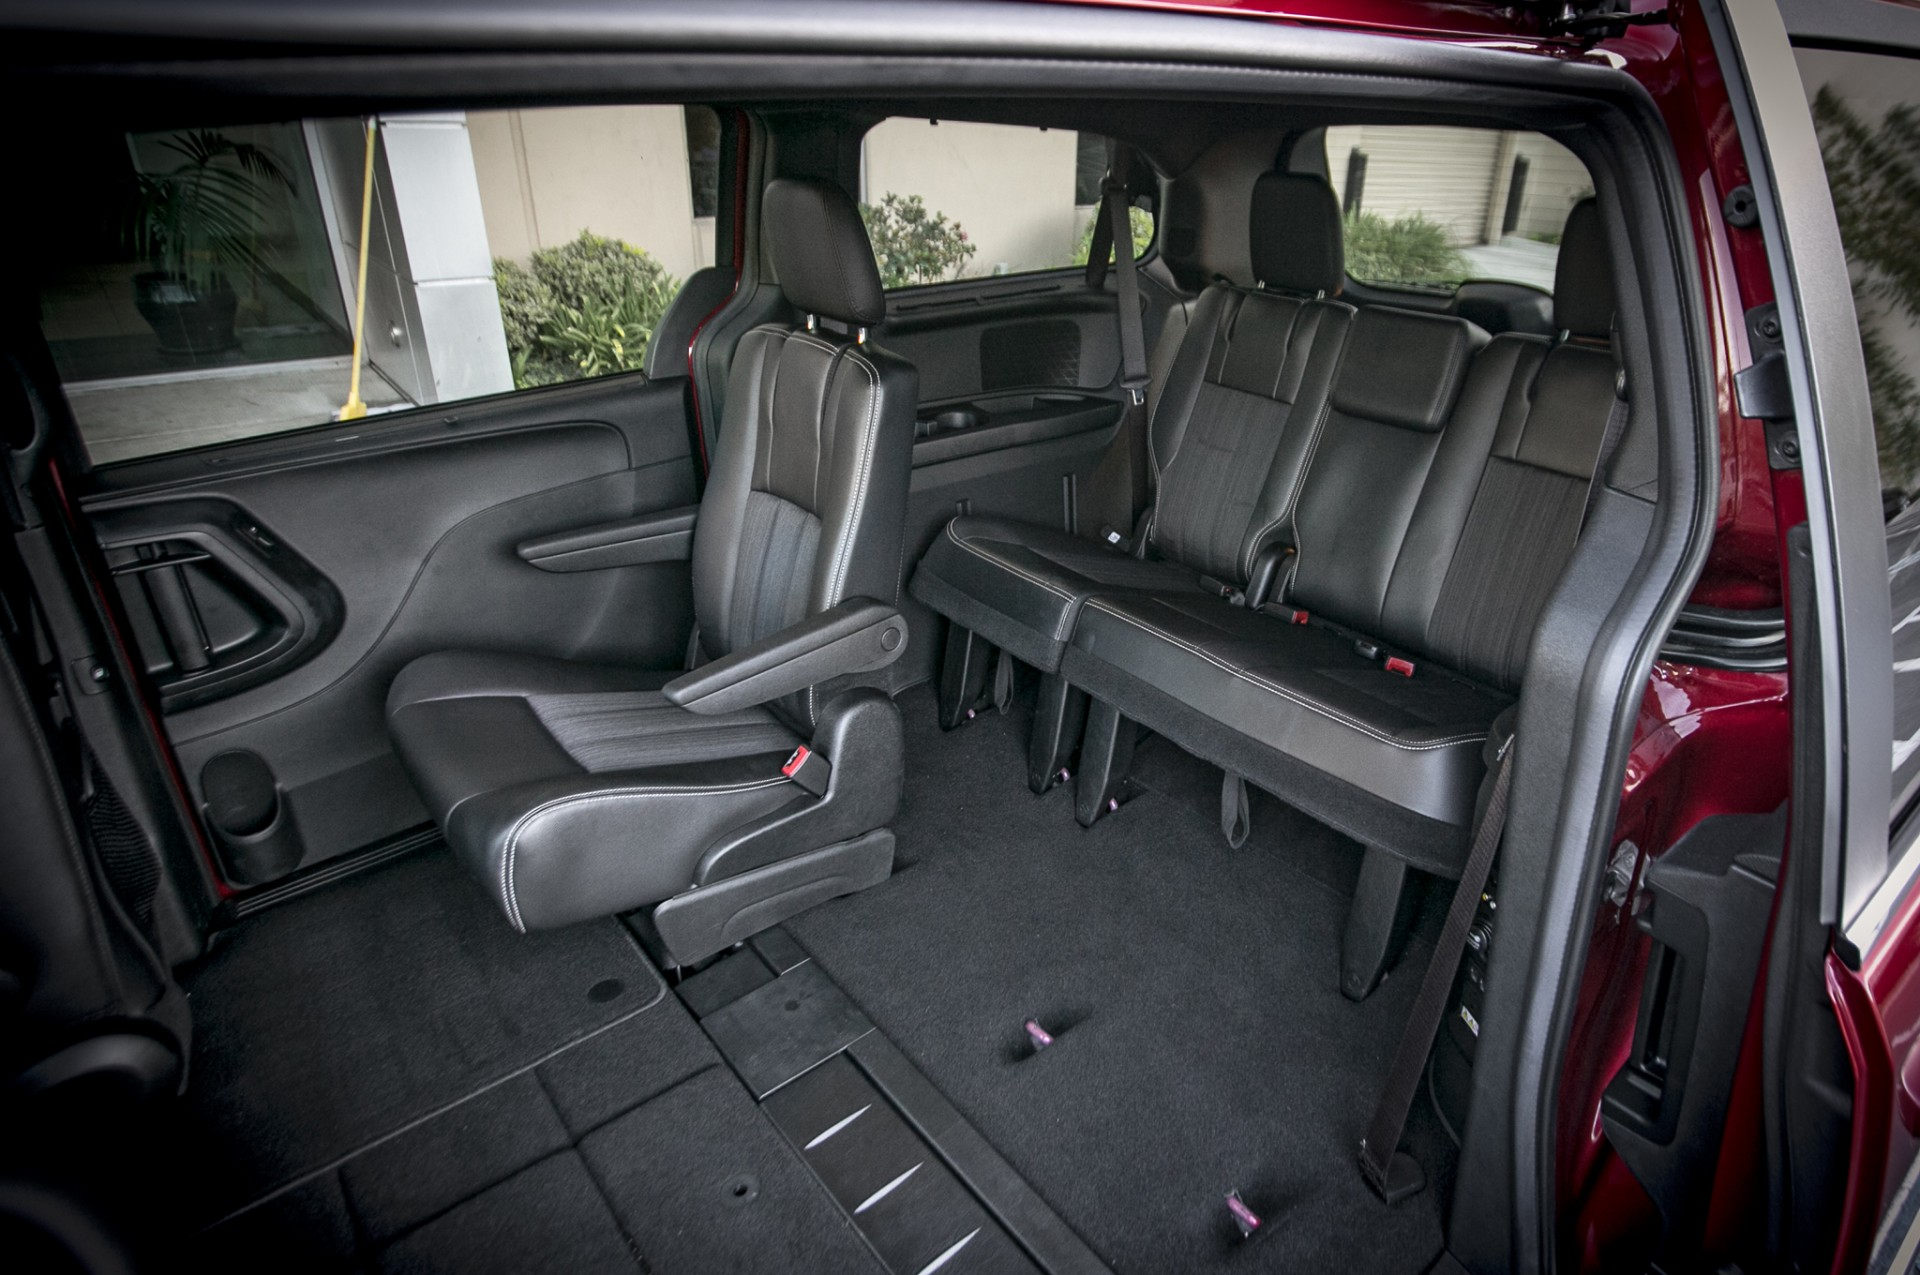 2017 Chrysler Town And Country Rear Interior View